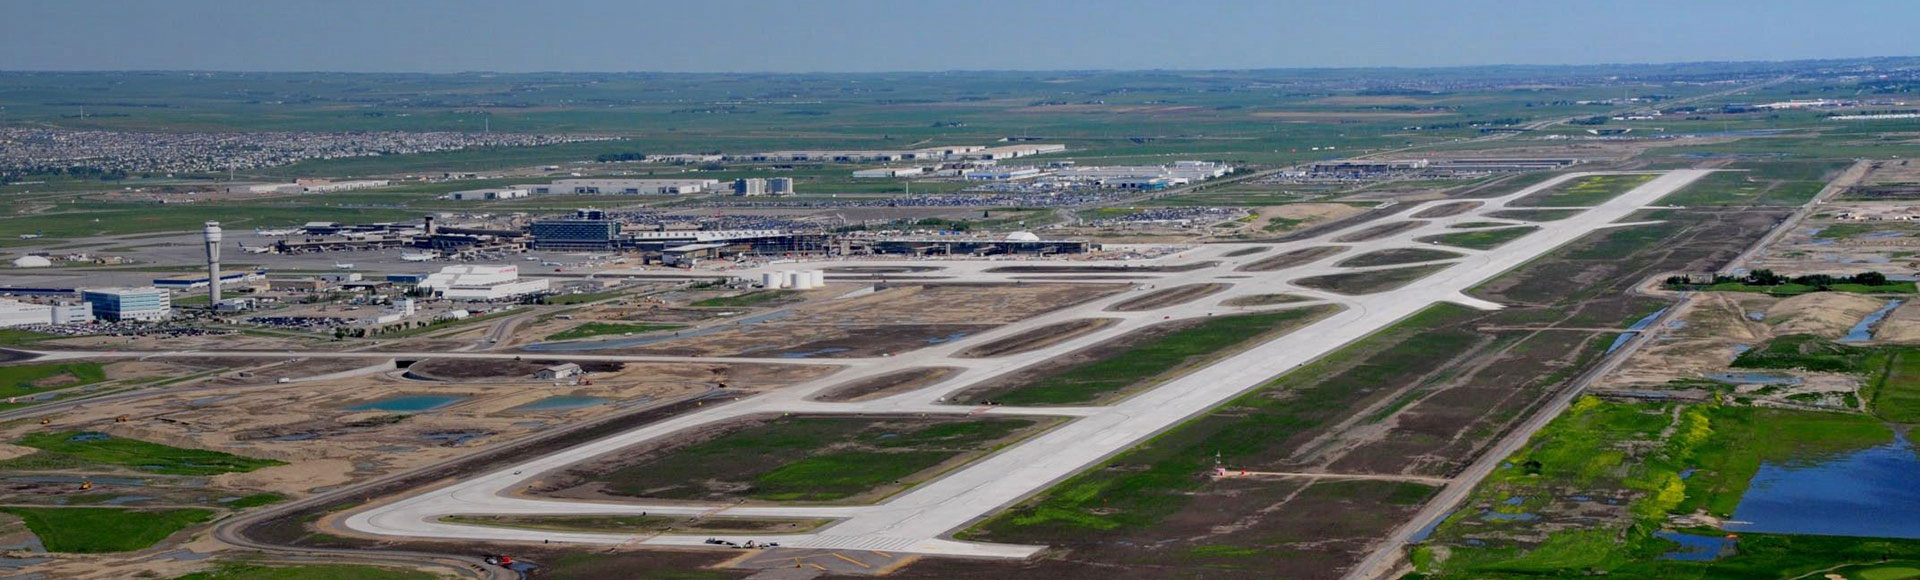 Calgary International Airport Runway Development Project